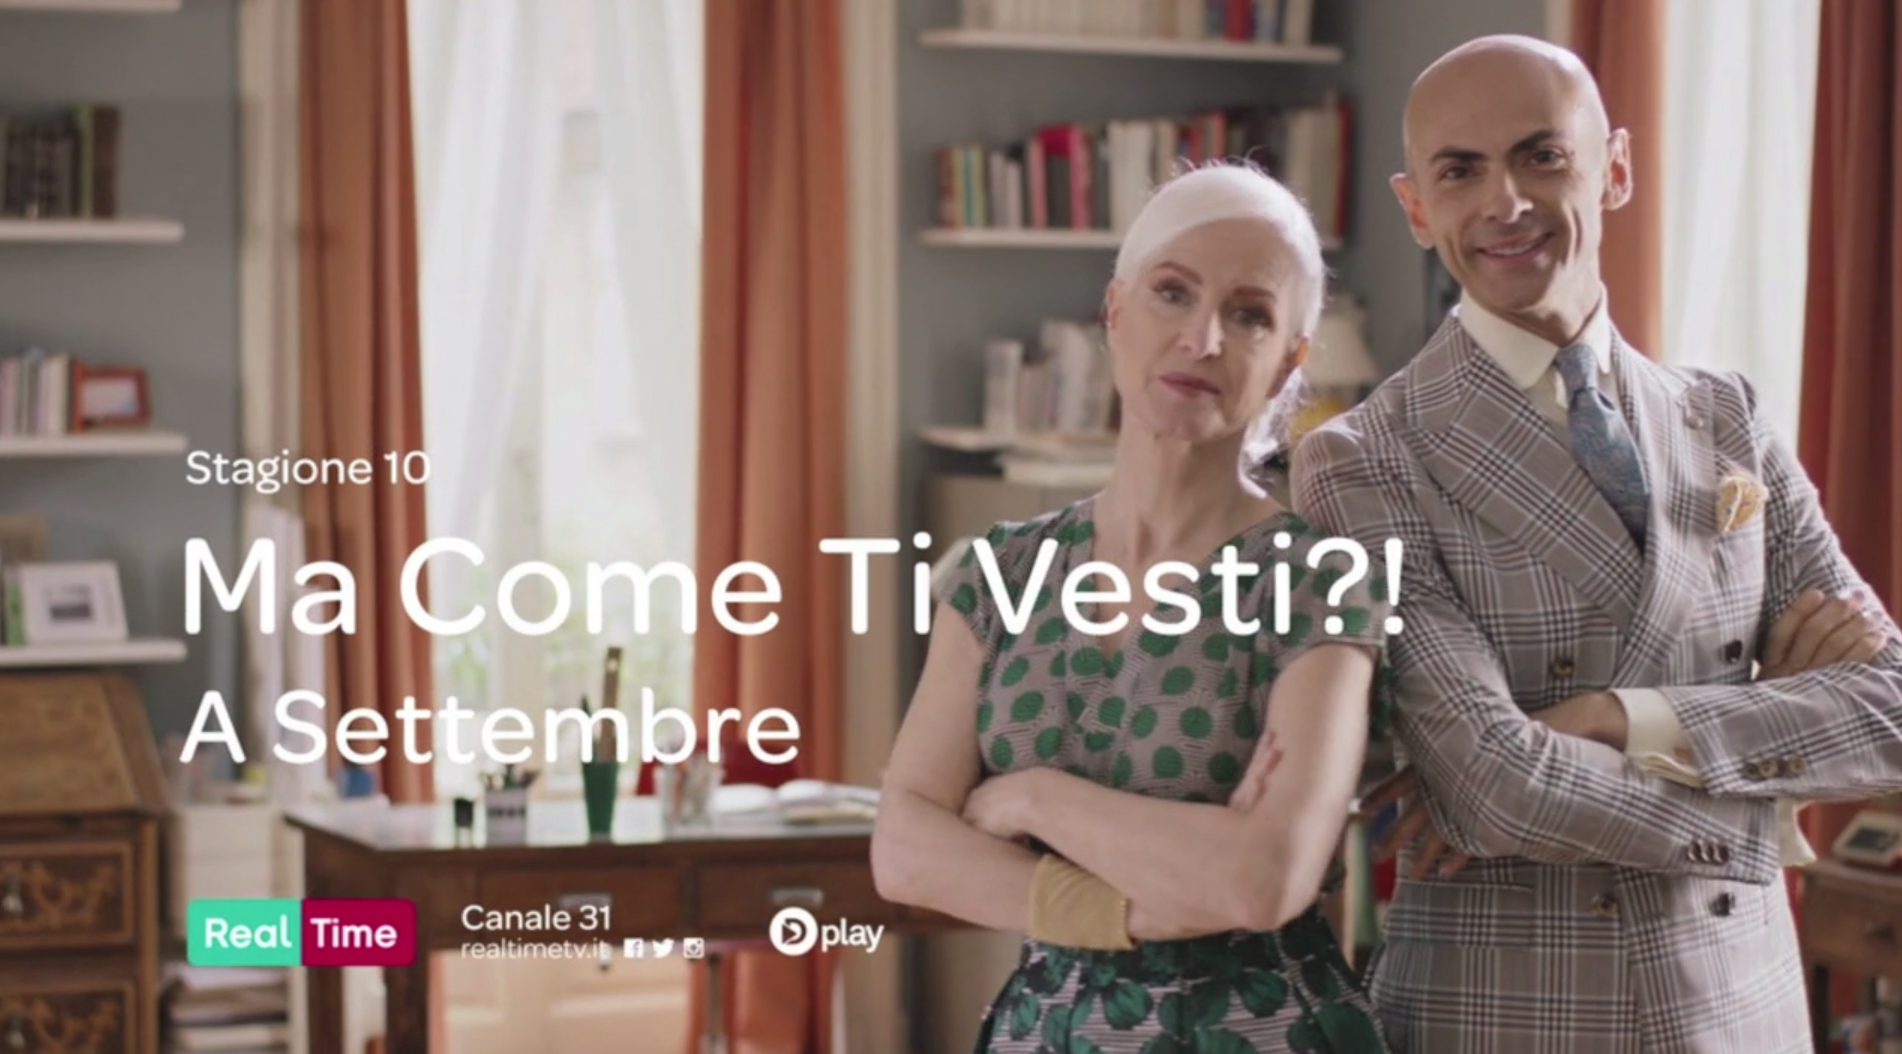 Ma Come Ti Vesti?! Promo & Call to action